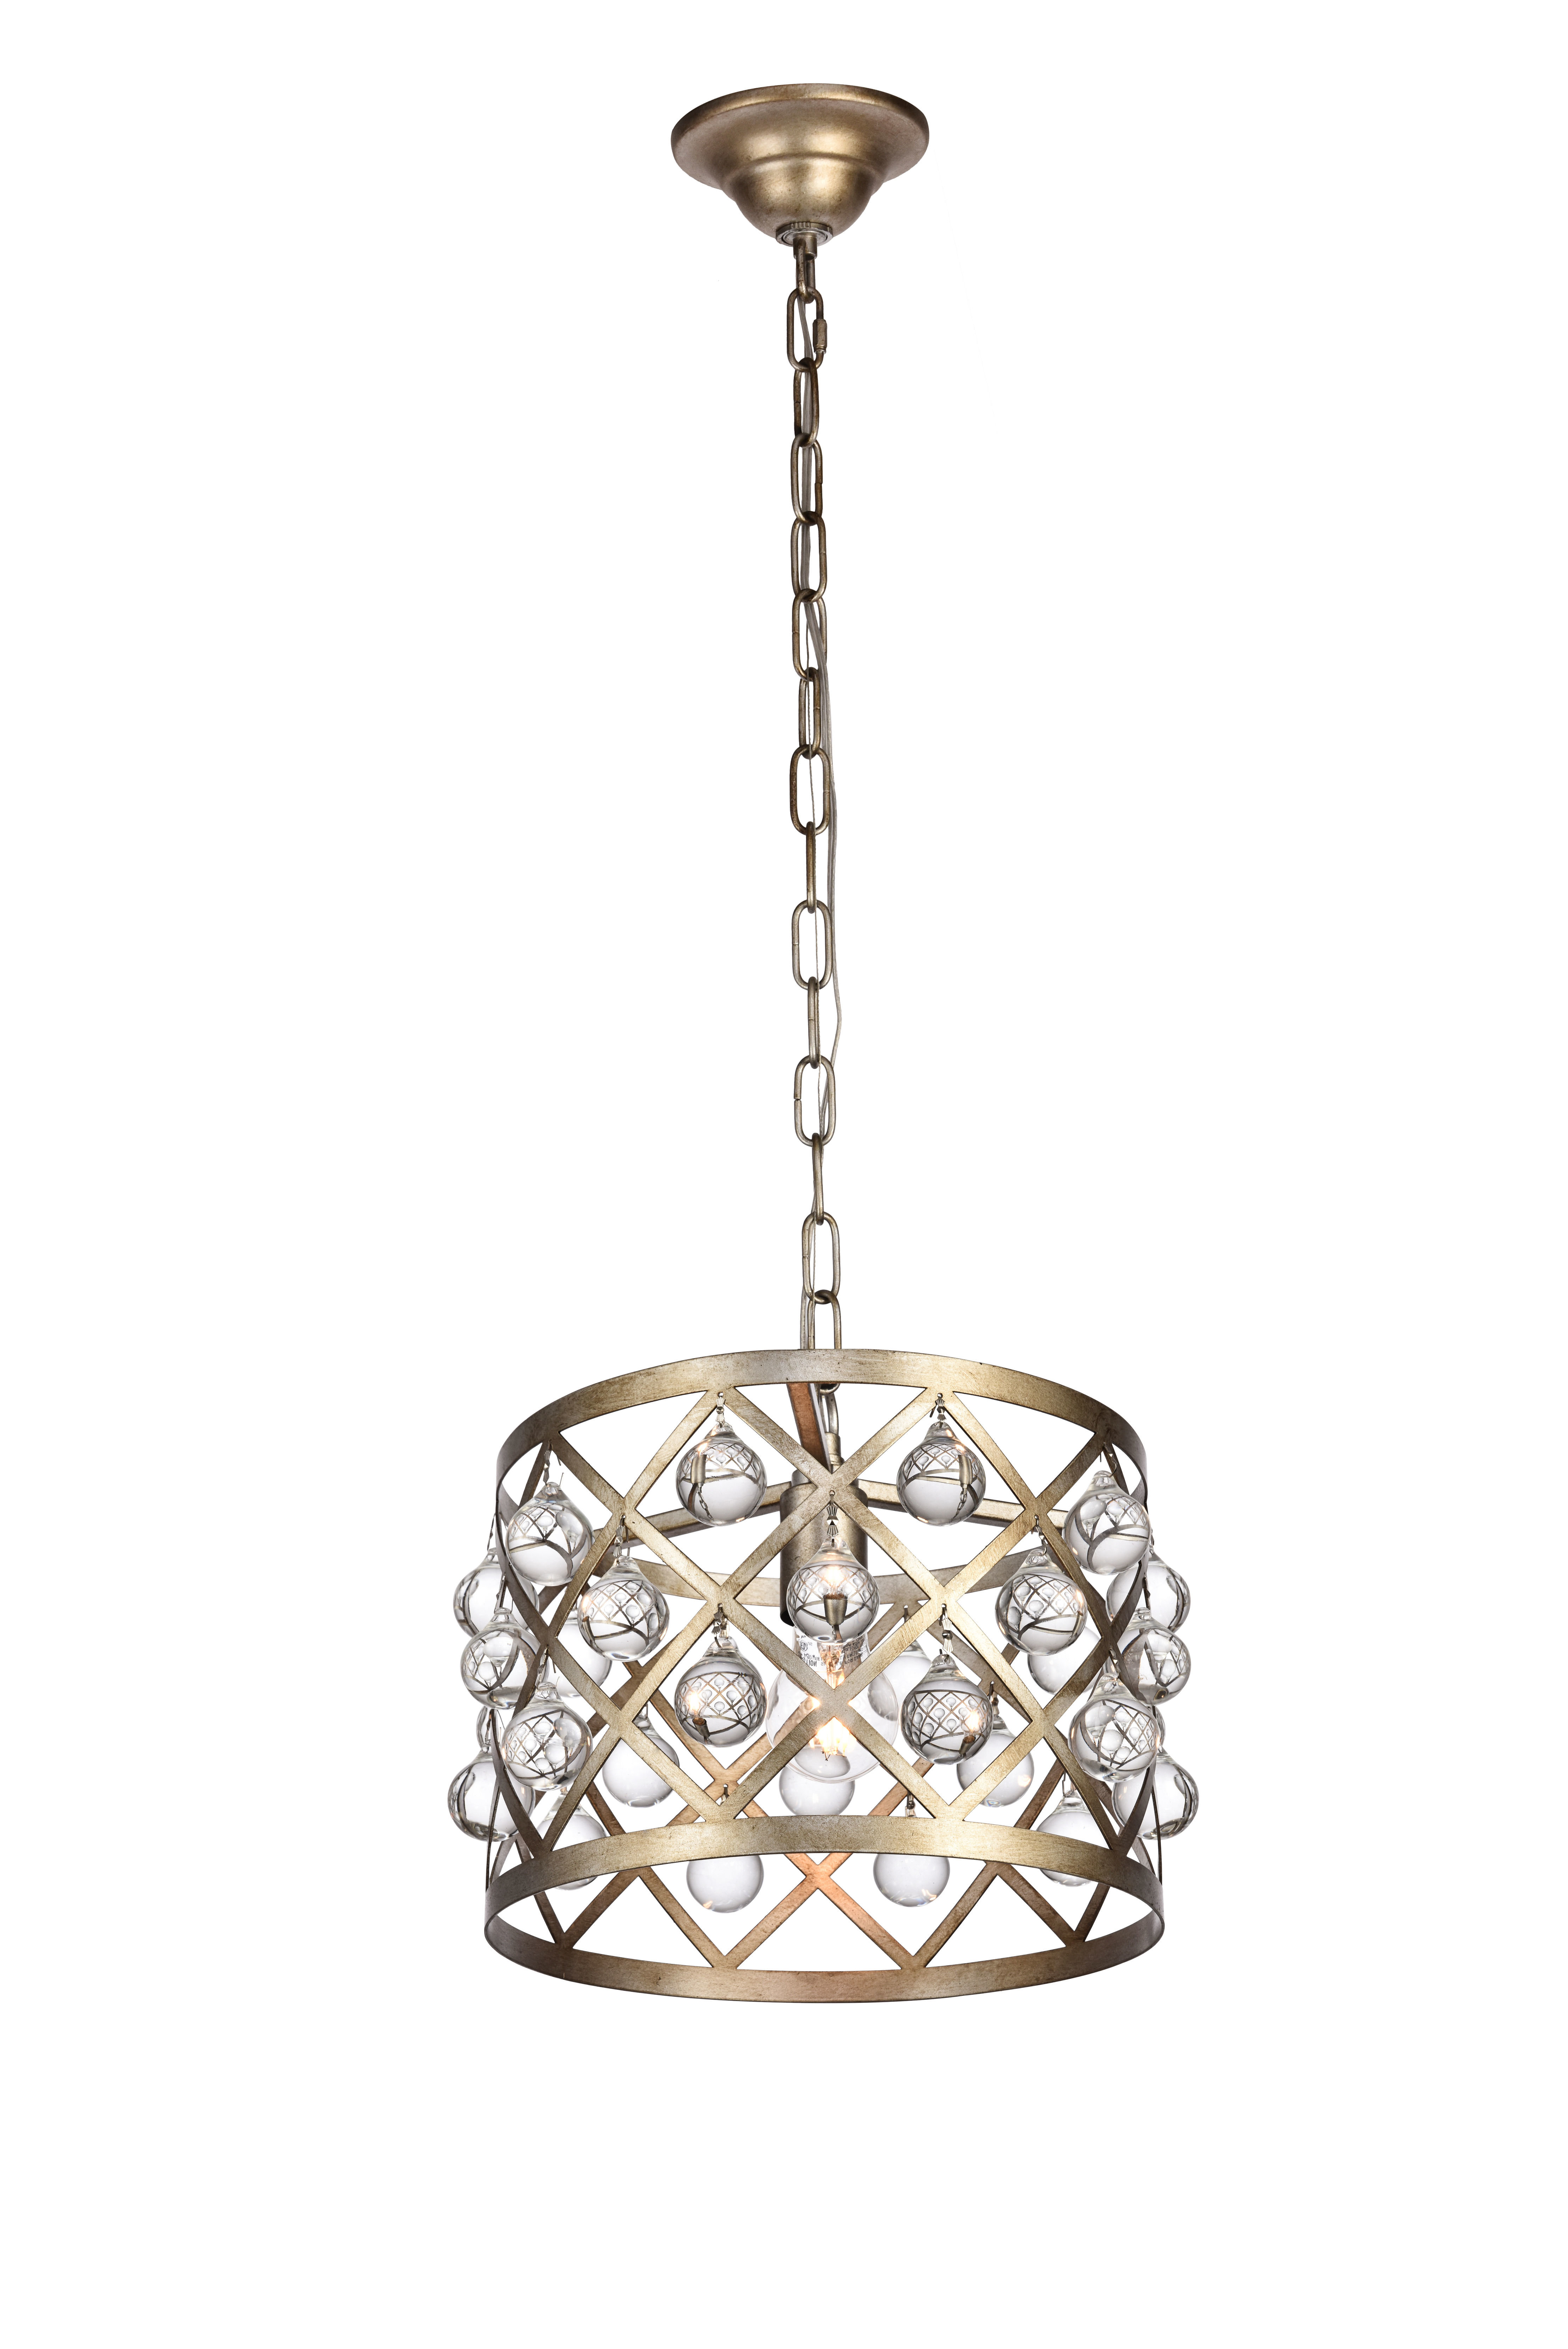 House Of Hampton Westbourne 1 Light Drum Pendant With Bellamira 1 Light Drum Pendants (View 14 of 30)